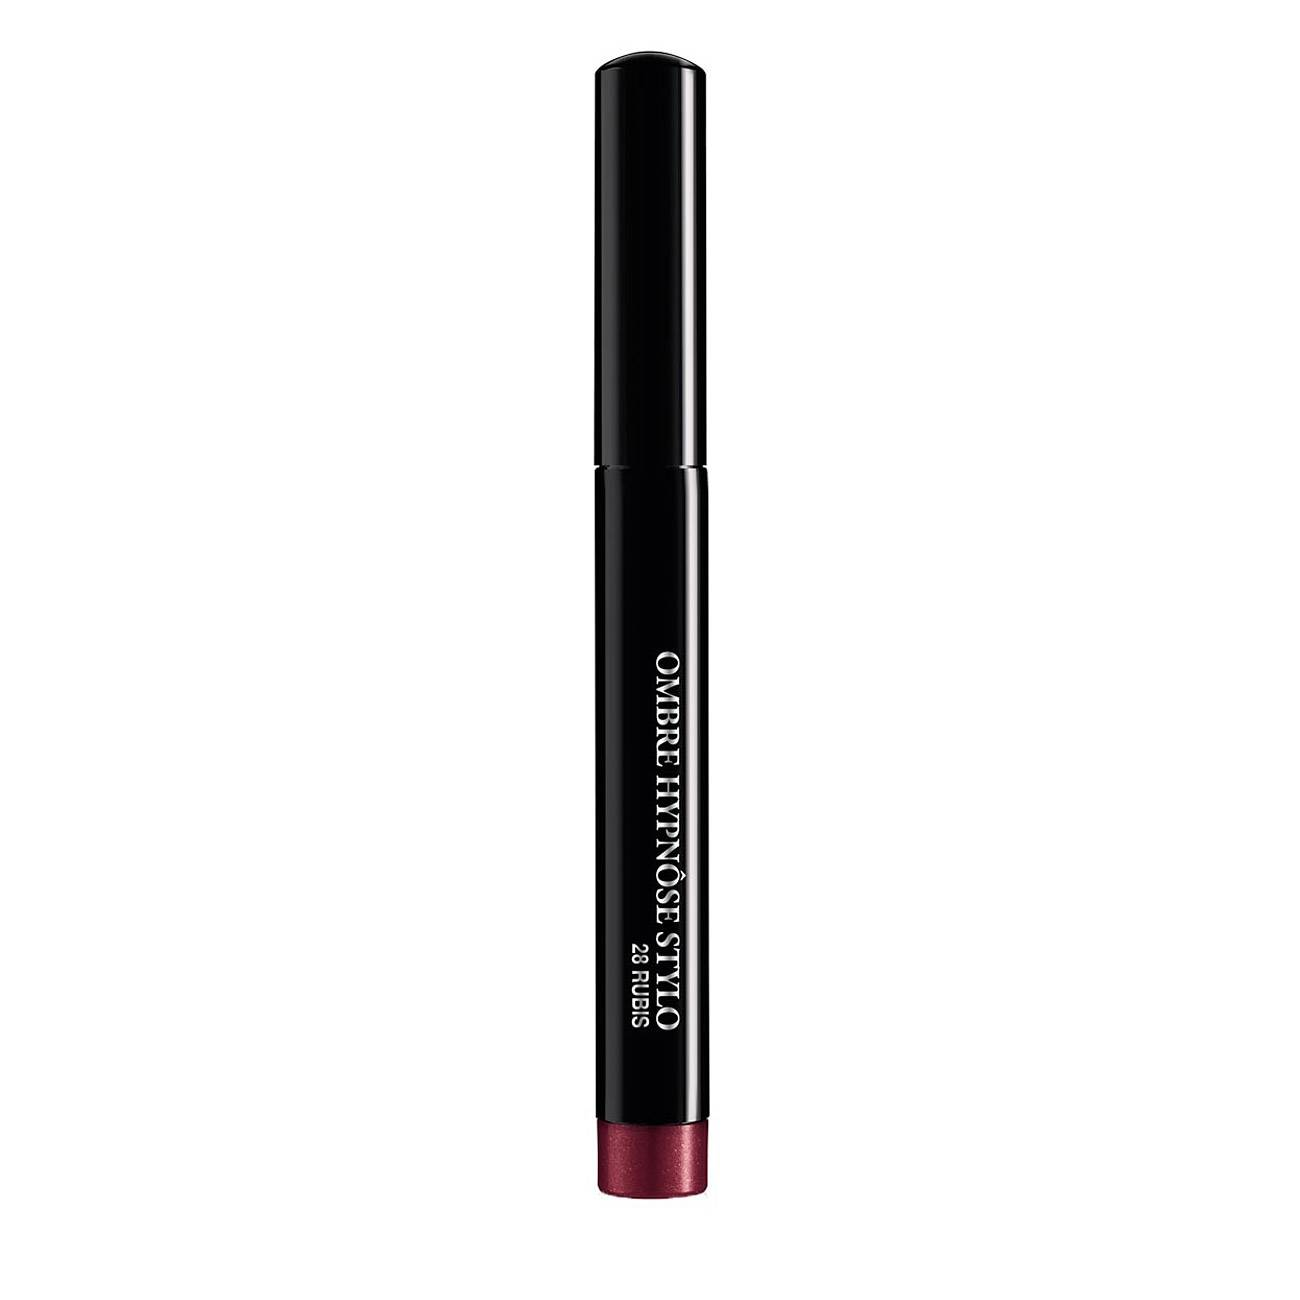 OMBRE HYPNOSE STYLO 1.4 G 028